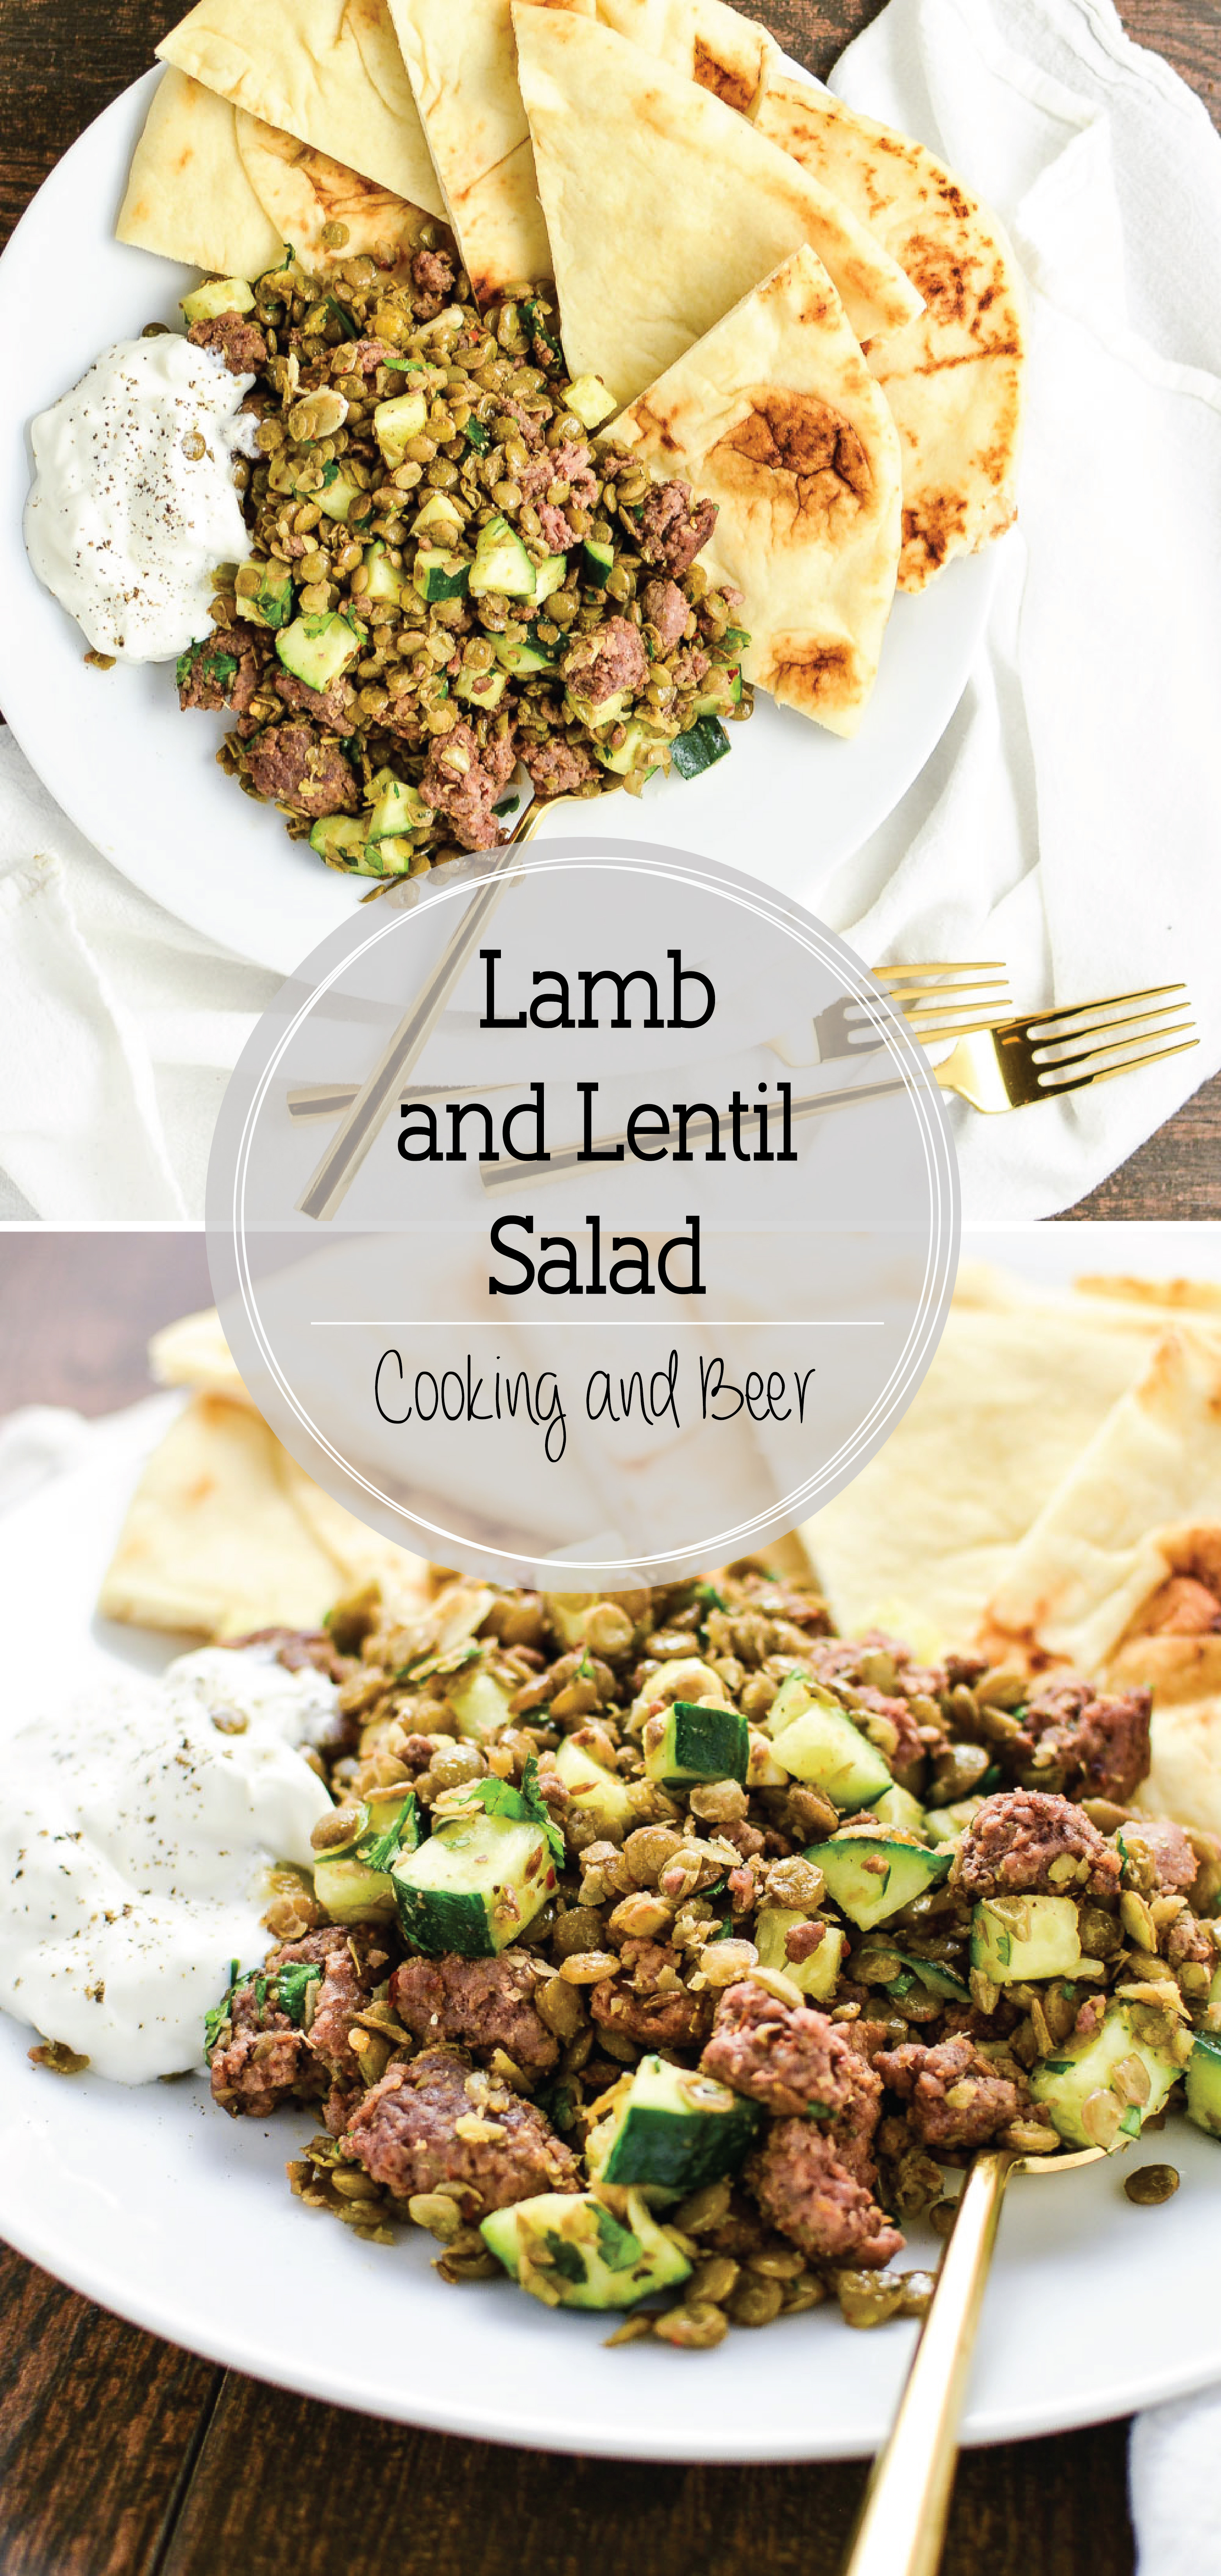 Spicy Lamb and Lentil Salad is the perfect appetizer or side dish recipe. It is full of texture, flavor and nutrients!